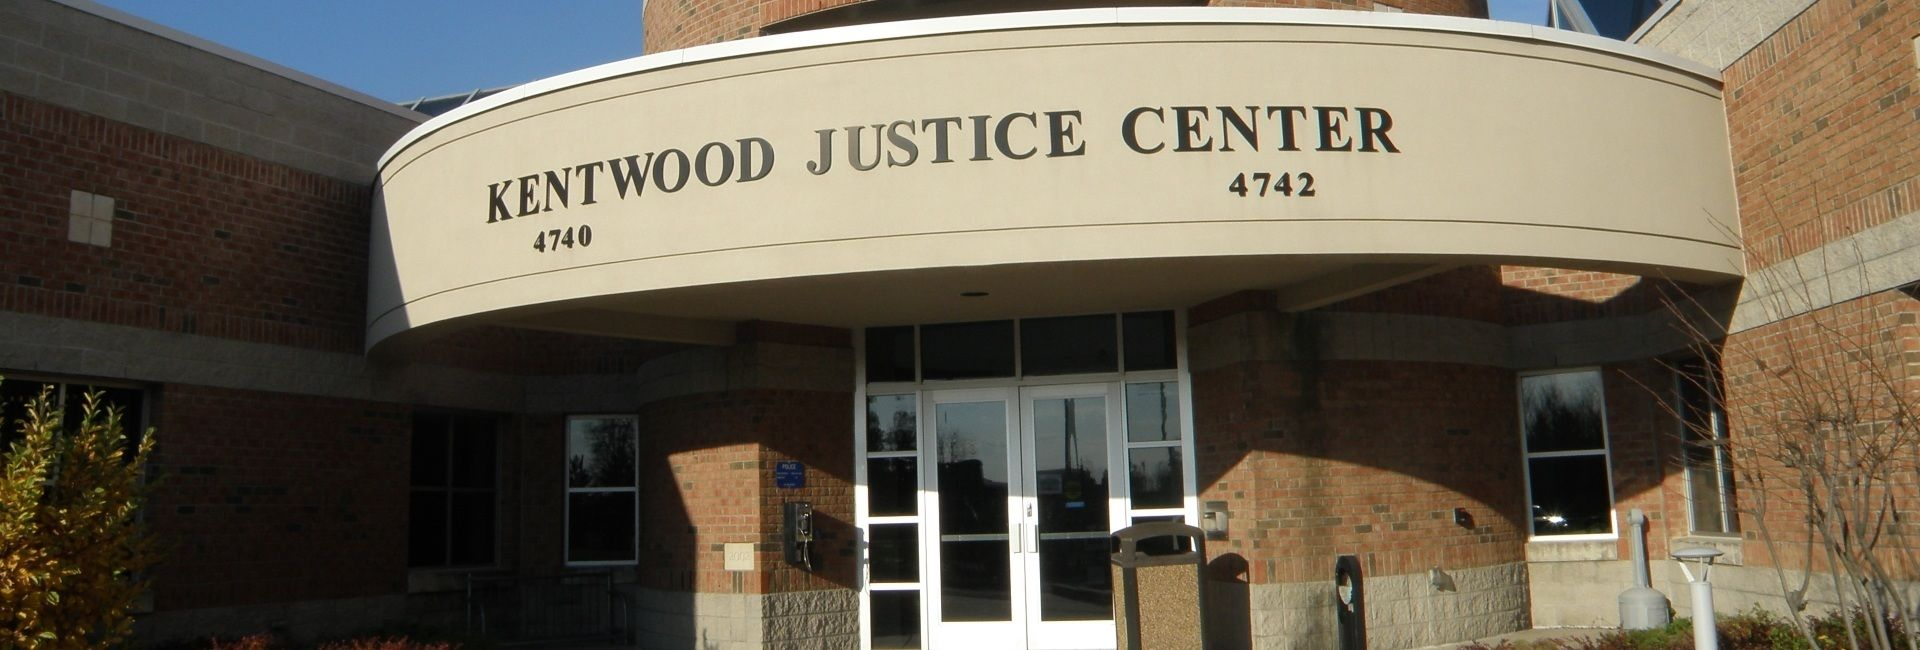 Kentwood Justice Center